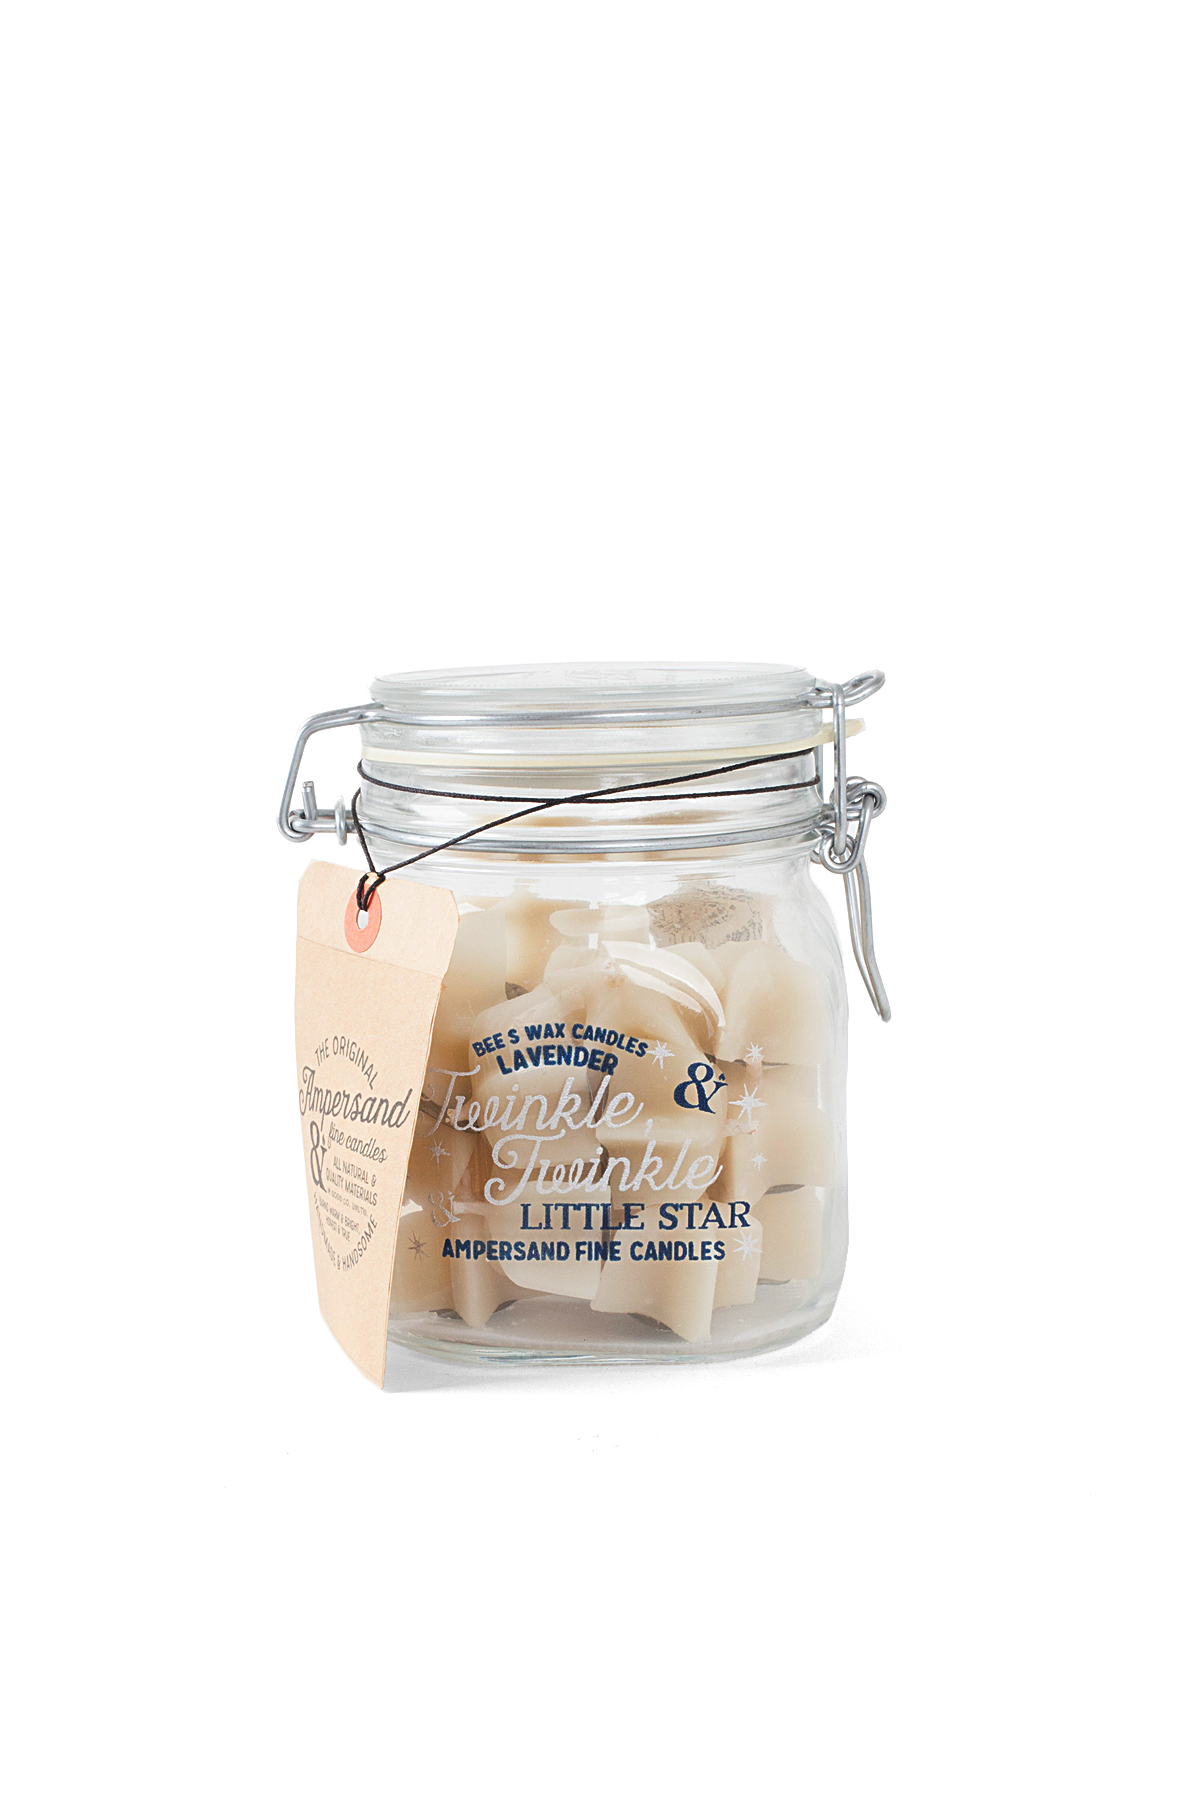 Ampersand Fine Candles : Twinkle Twinkle Little Star Jar (24piece)